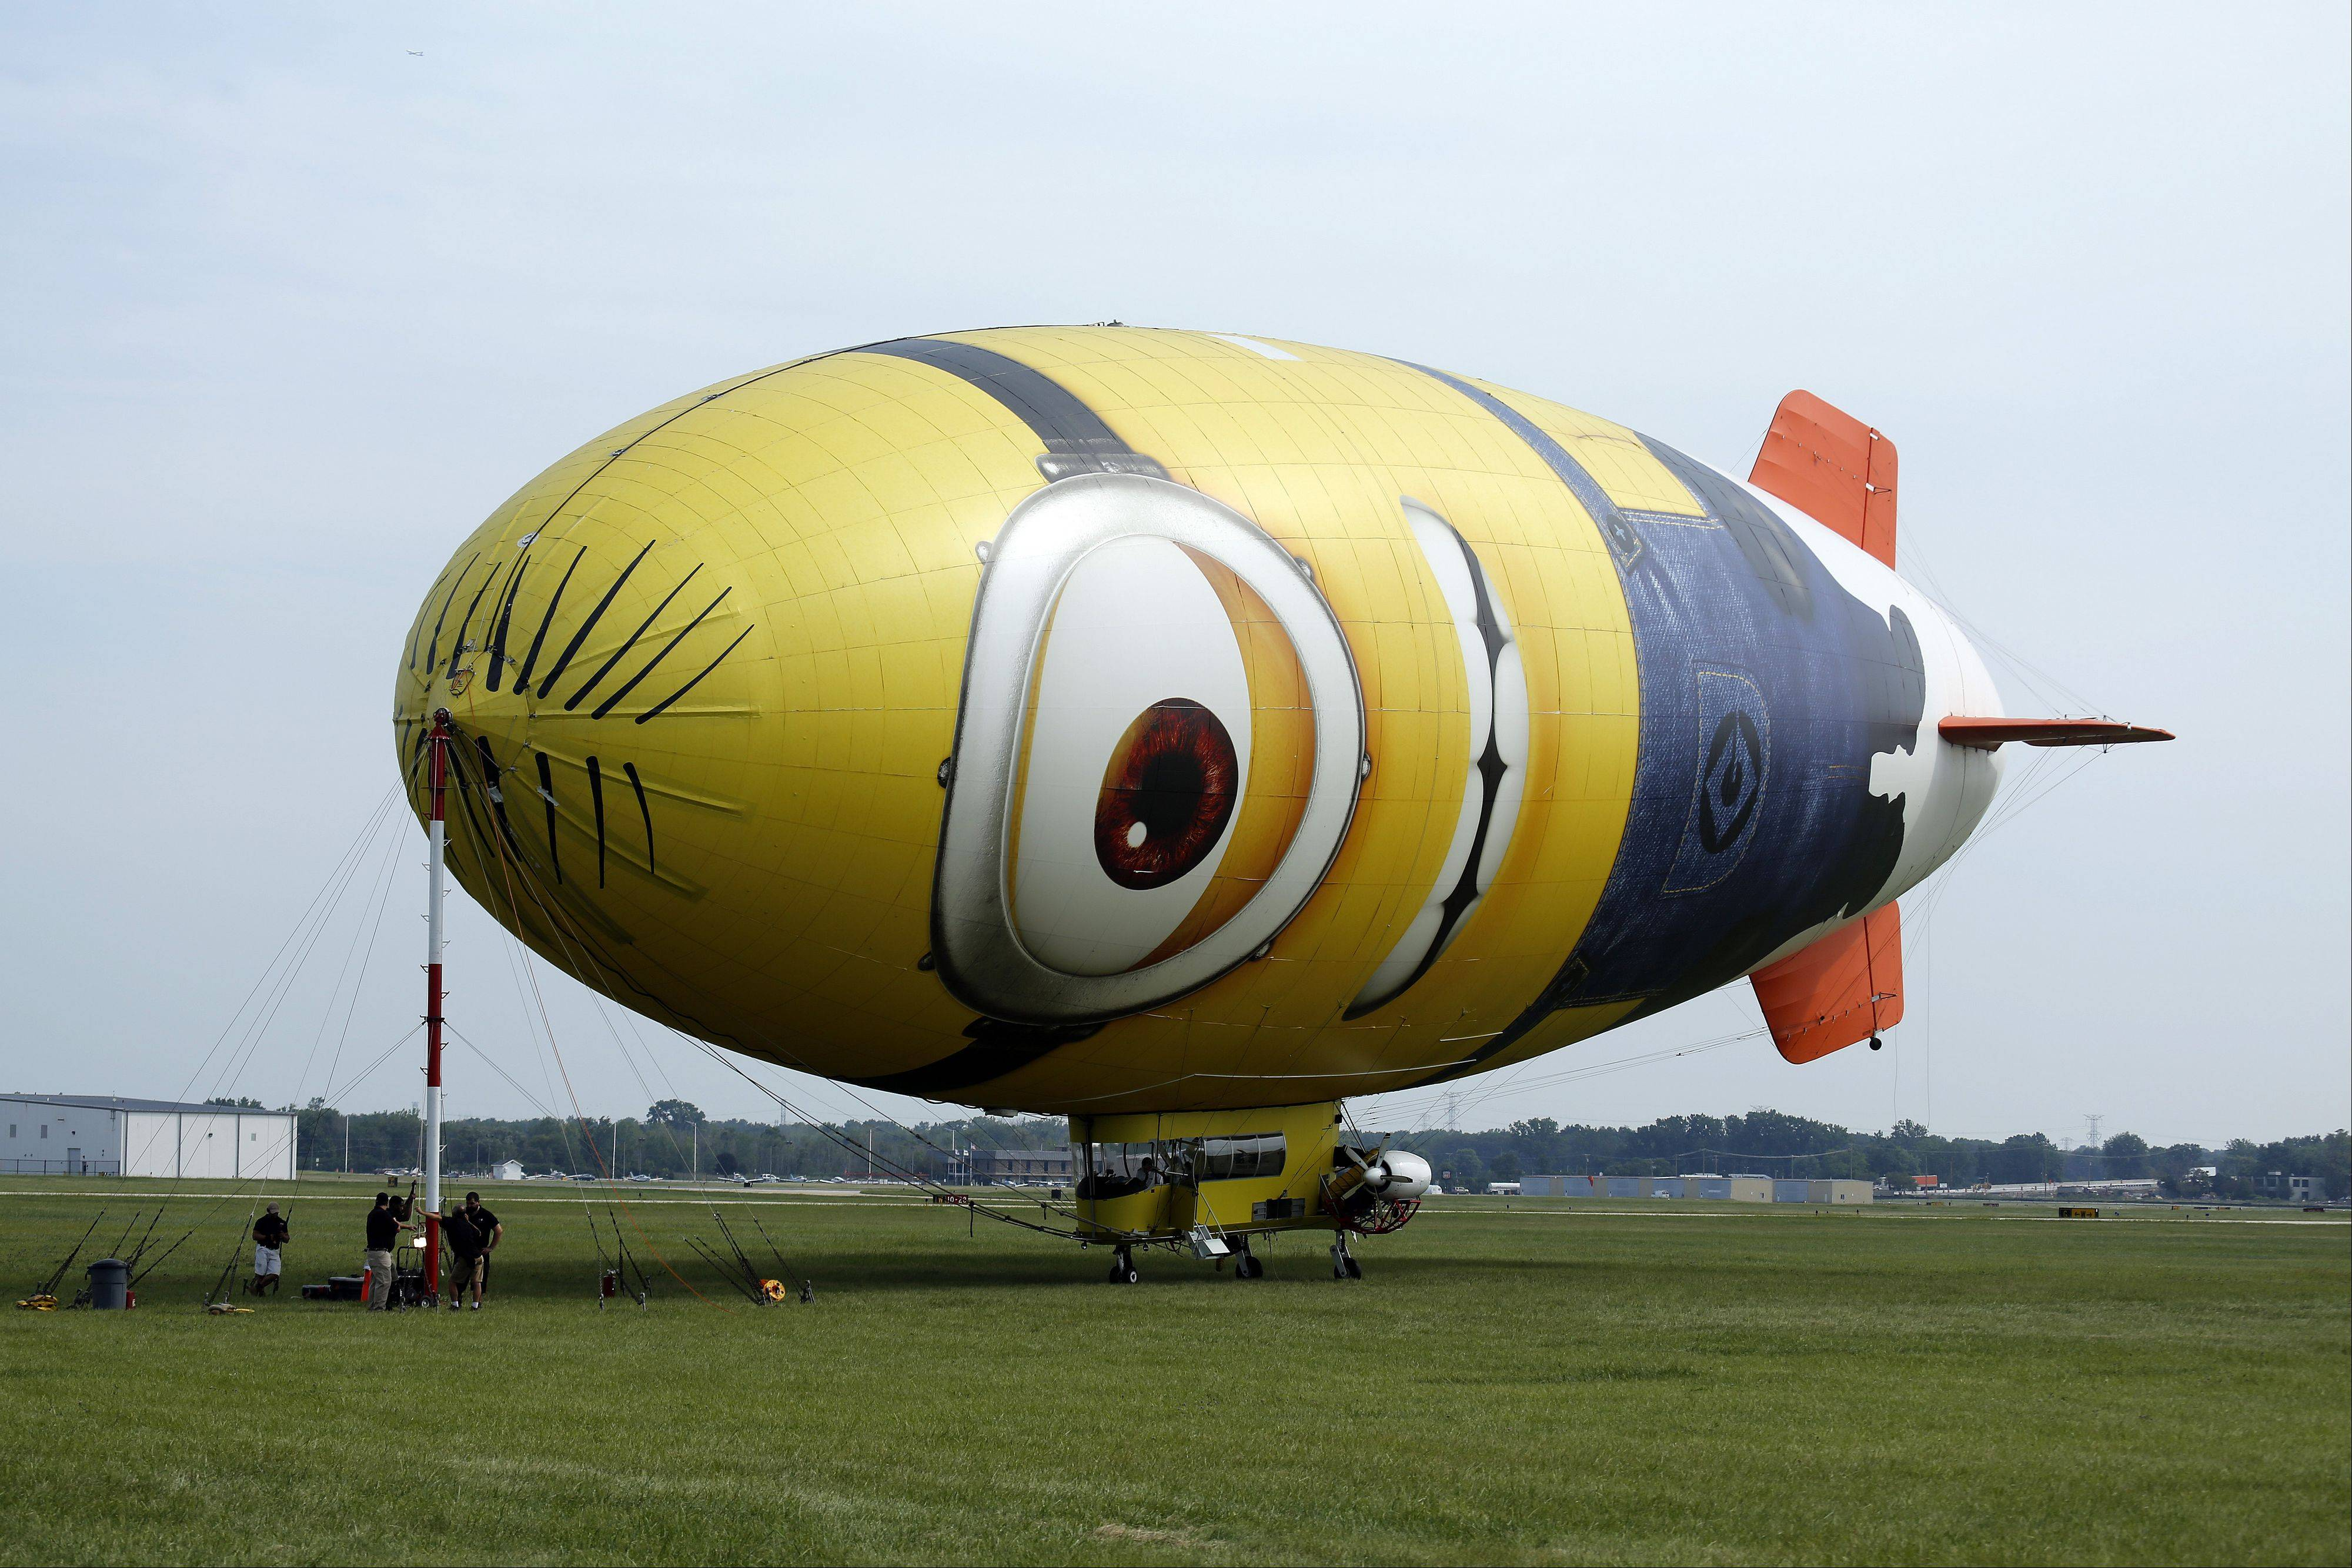 A blimp masquerading as a minion from the �Despicable Me� movies toured the air space above the Tri-Cities and DuPage County on Tuesday during a short stop at the DuPage Airport in West Chicago. Allan Patrick Judd, who has been flying since he was 16 and before he could drive a car, is the pilot that has been steering the Minion Balloon on its cross-country tour promoting the movie.